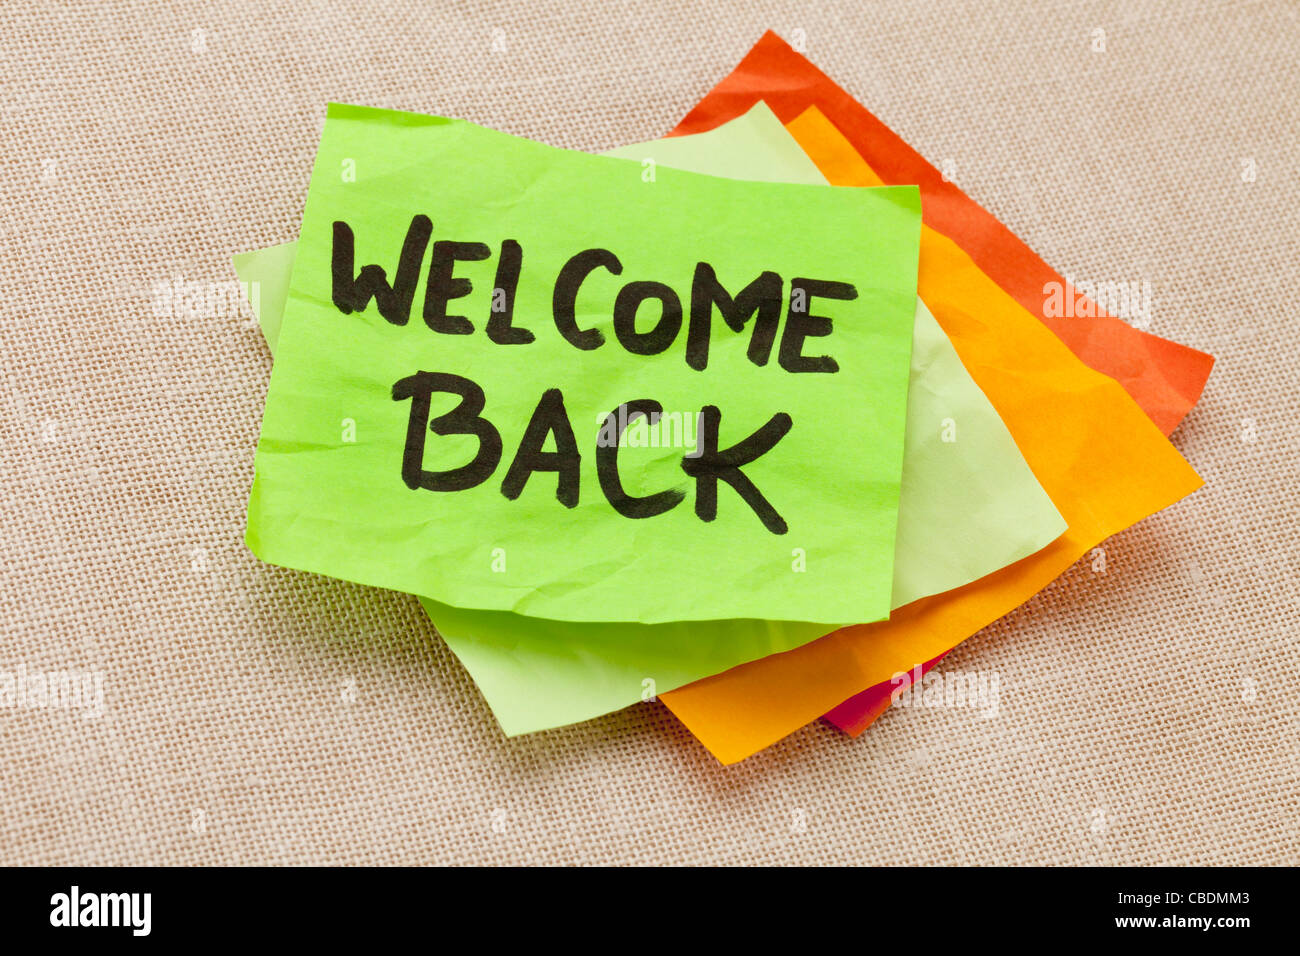 welcome back - handwriting on a green sticky note against canvas board - Stock Image